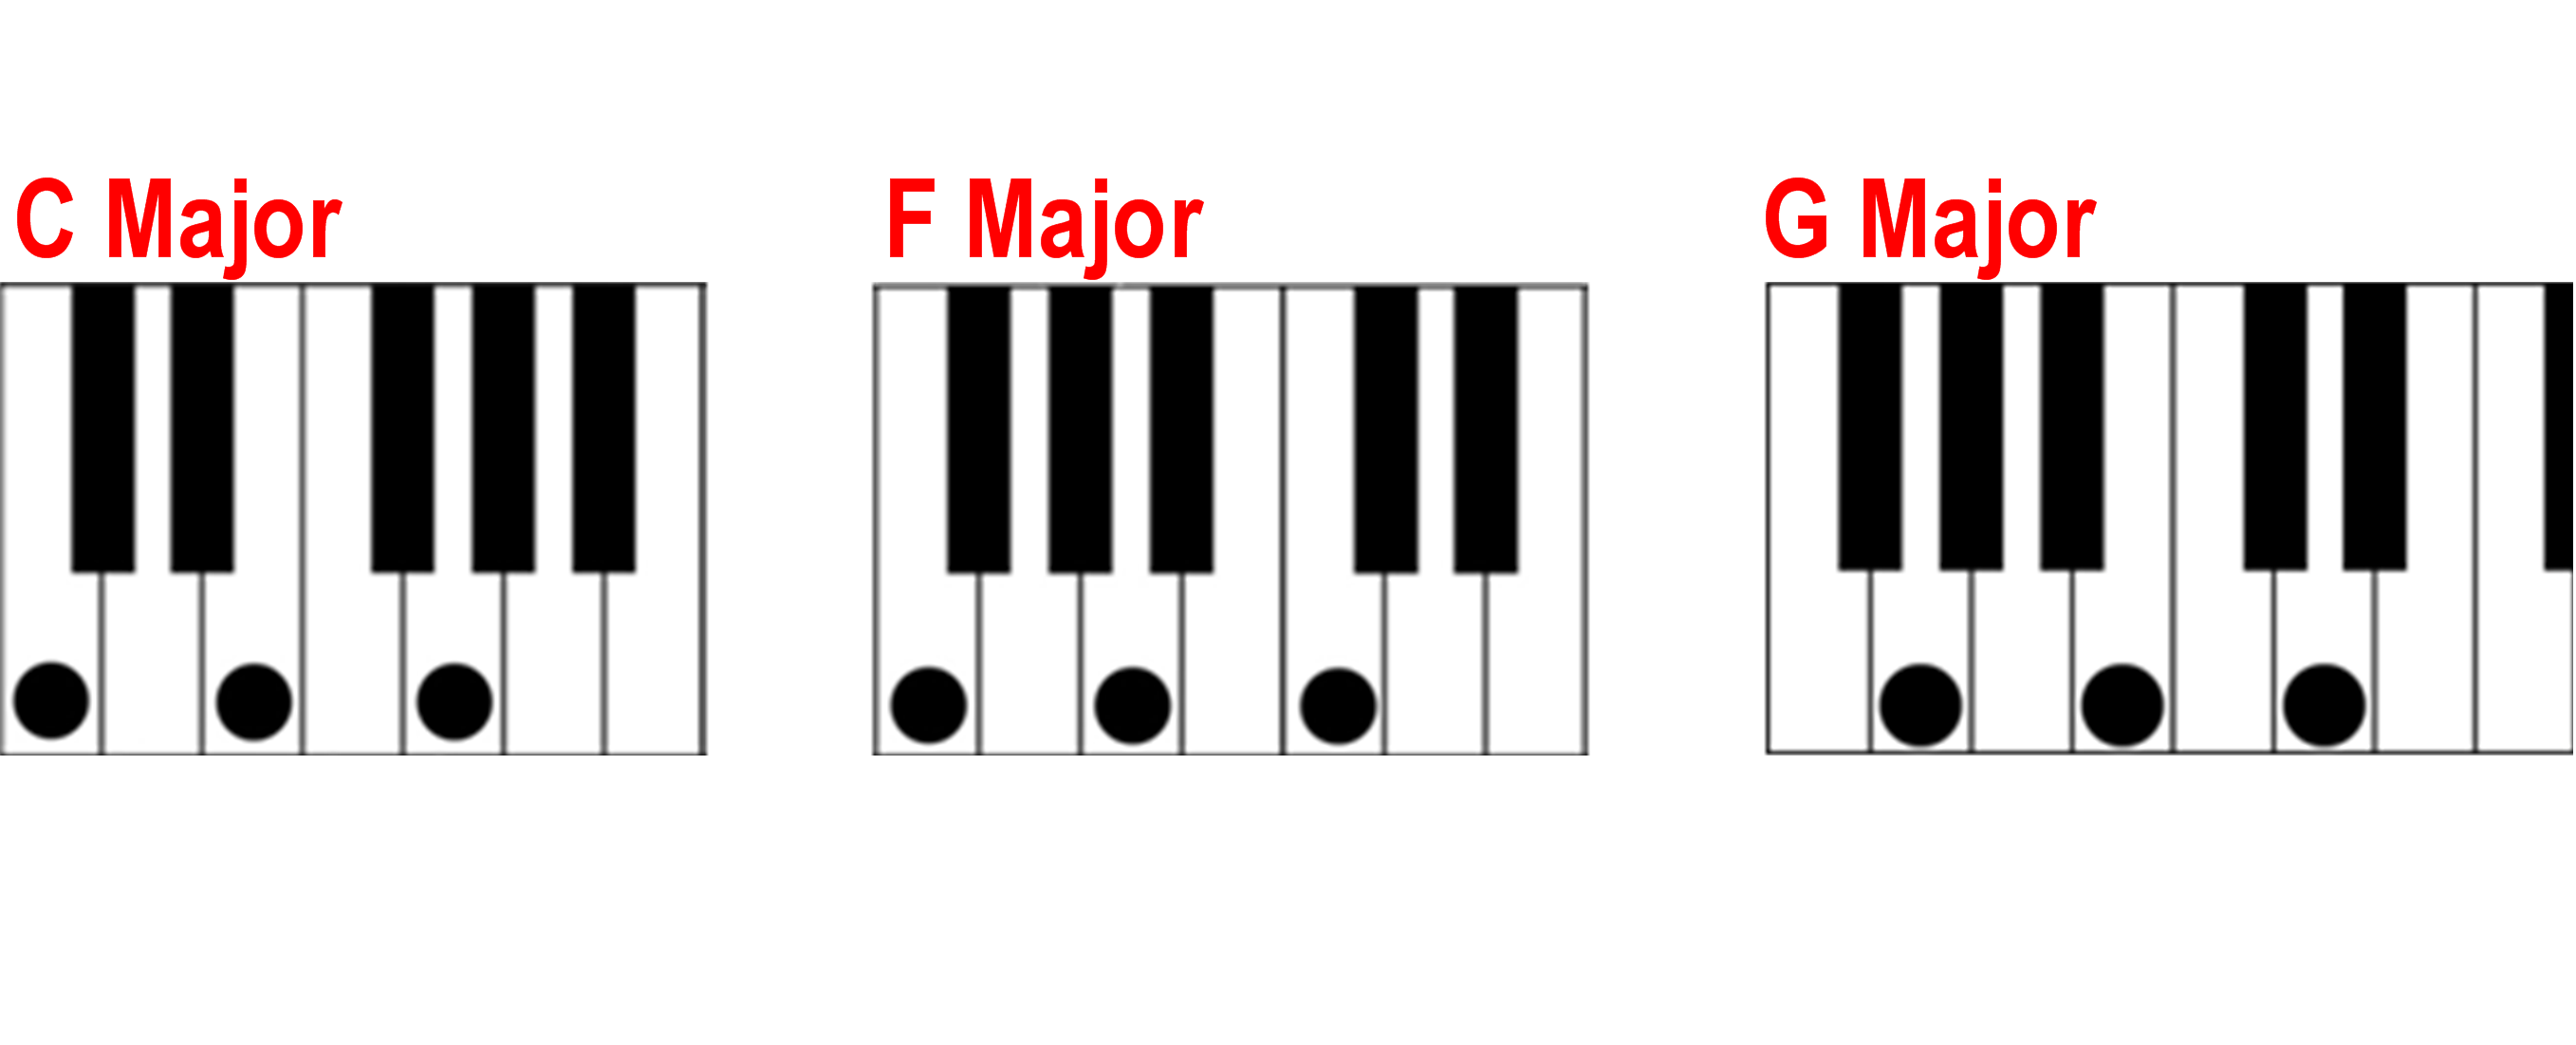 2715x1101 Finding A Major Chord On The Piano